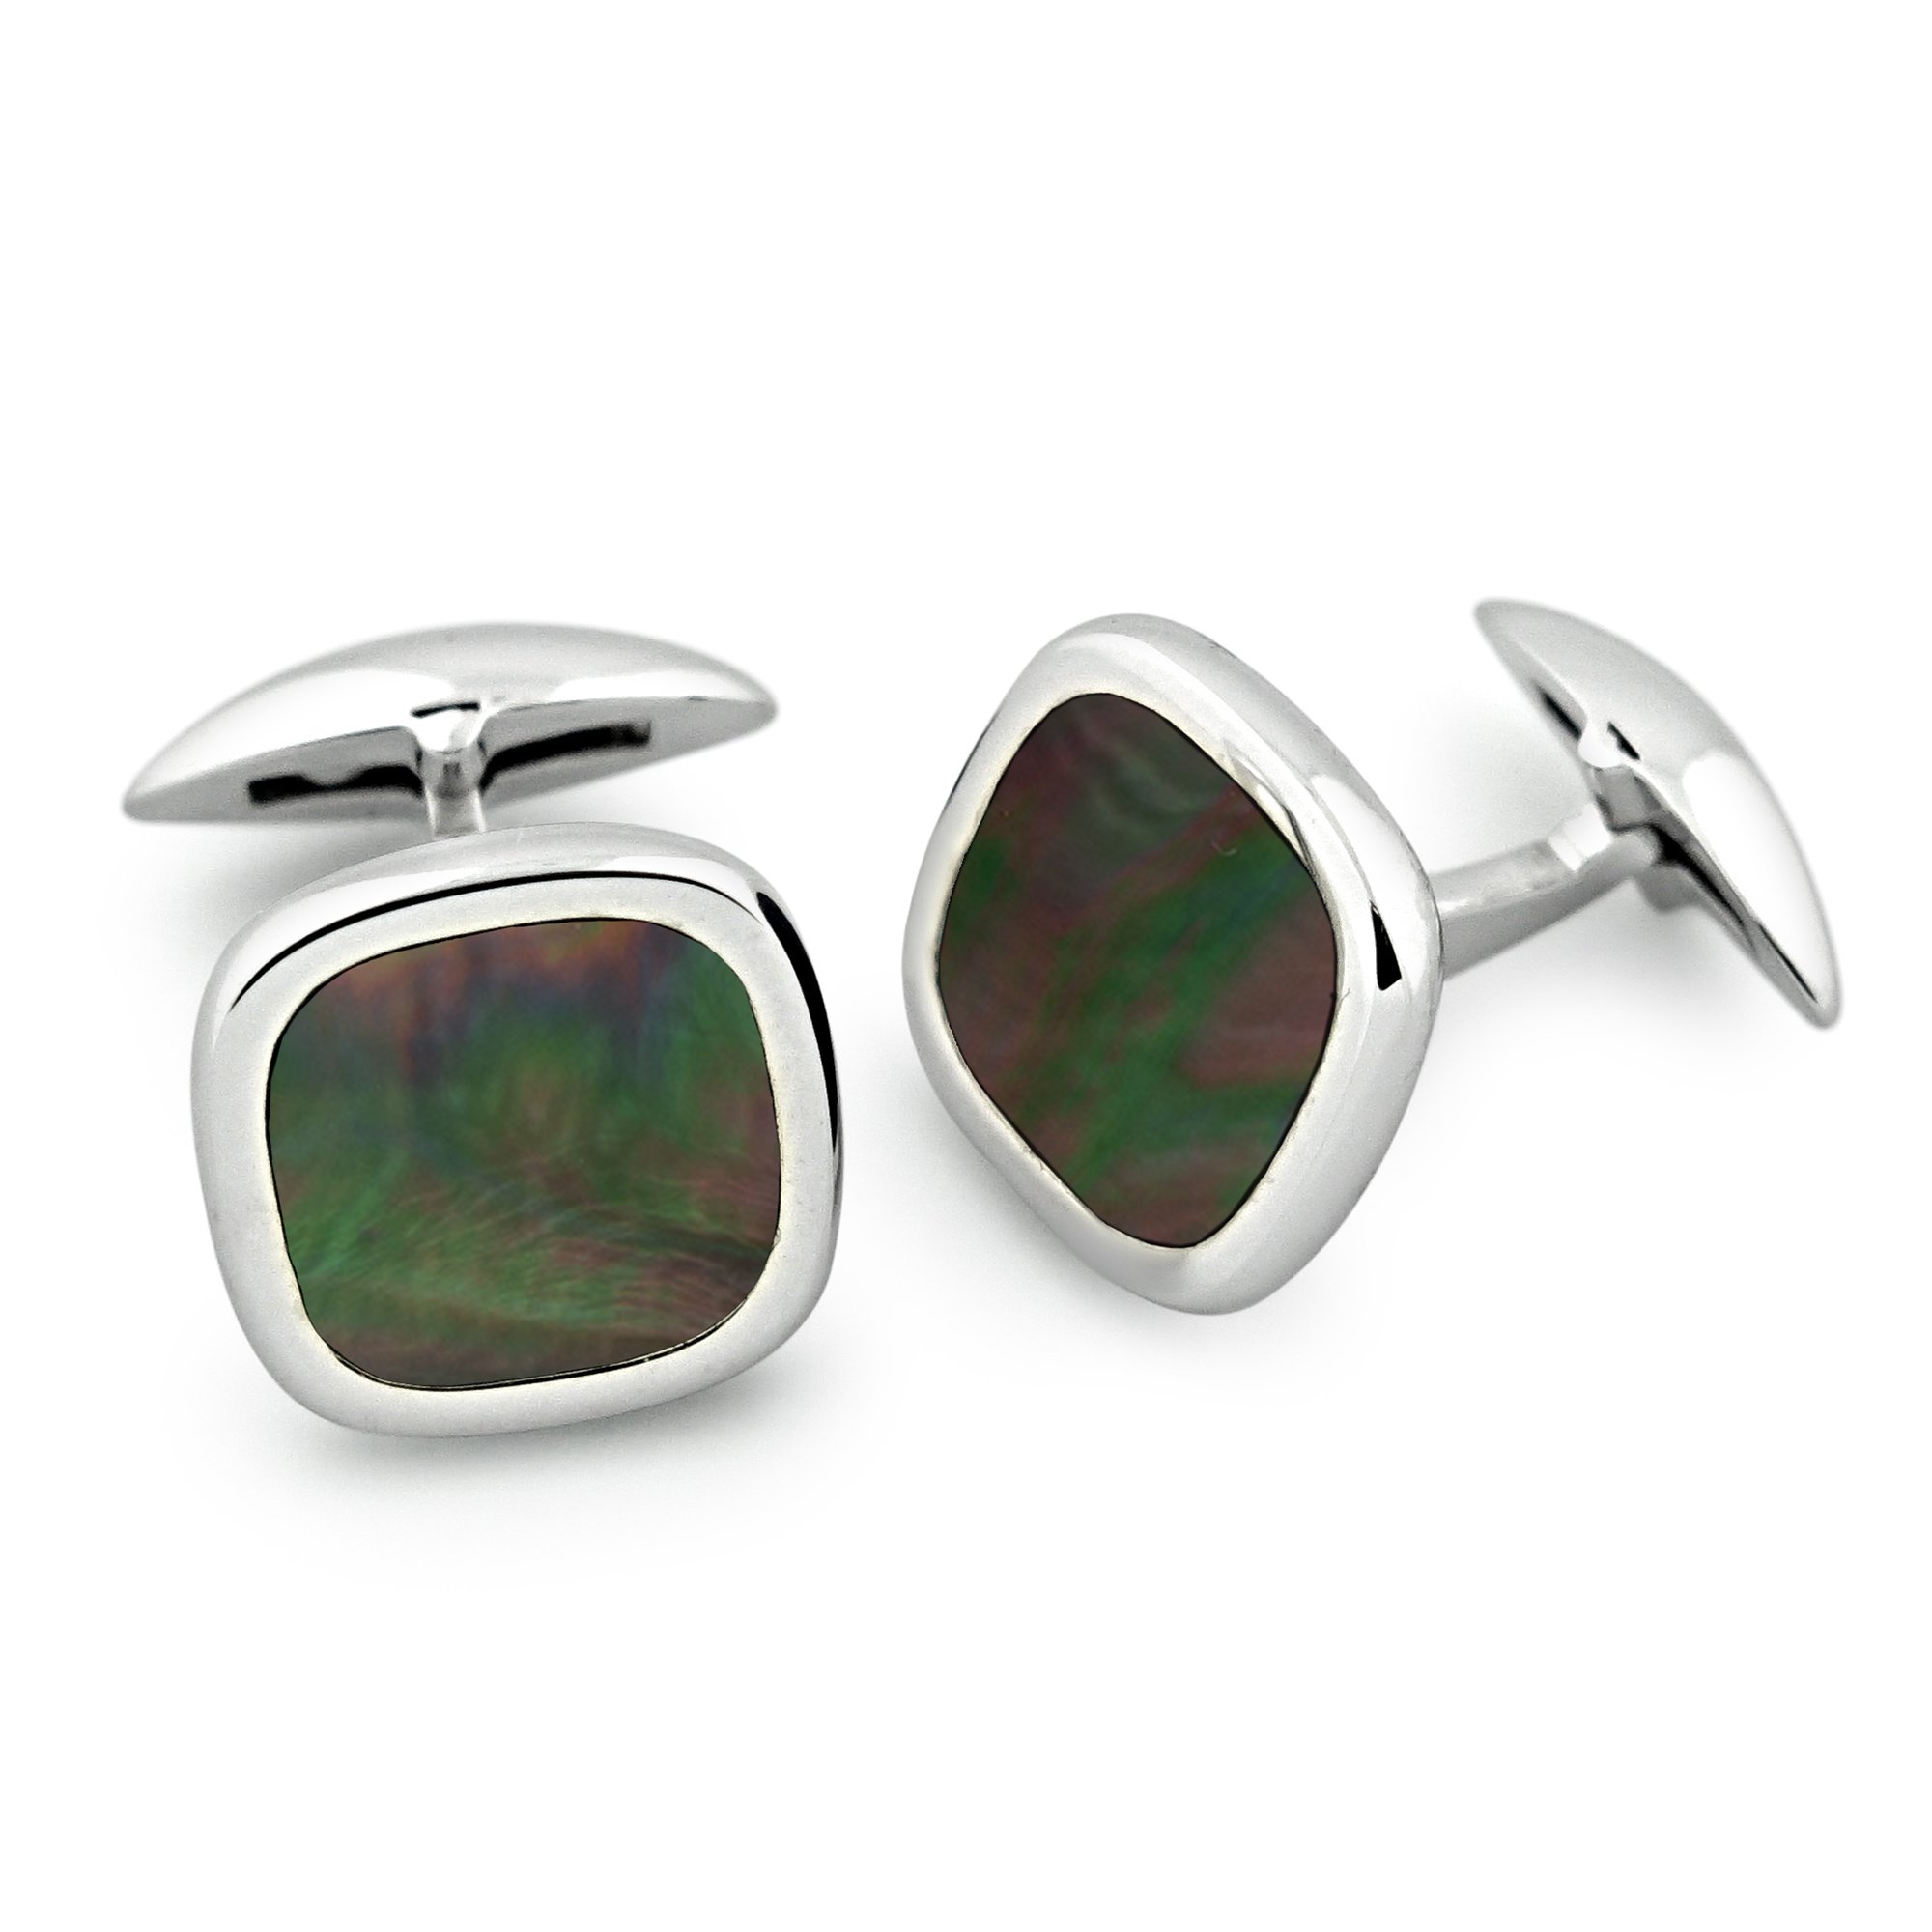 Zsamuel Mens Sterling Silver 925 Black Mother of Pearl Rounded Square Cufflinks